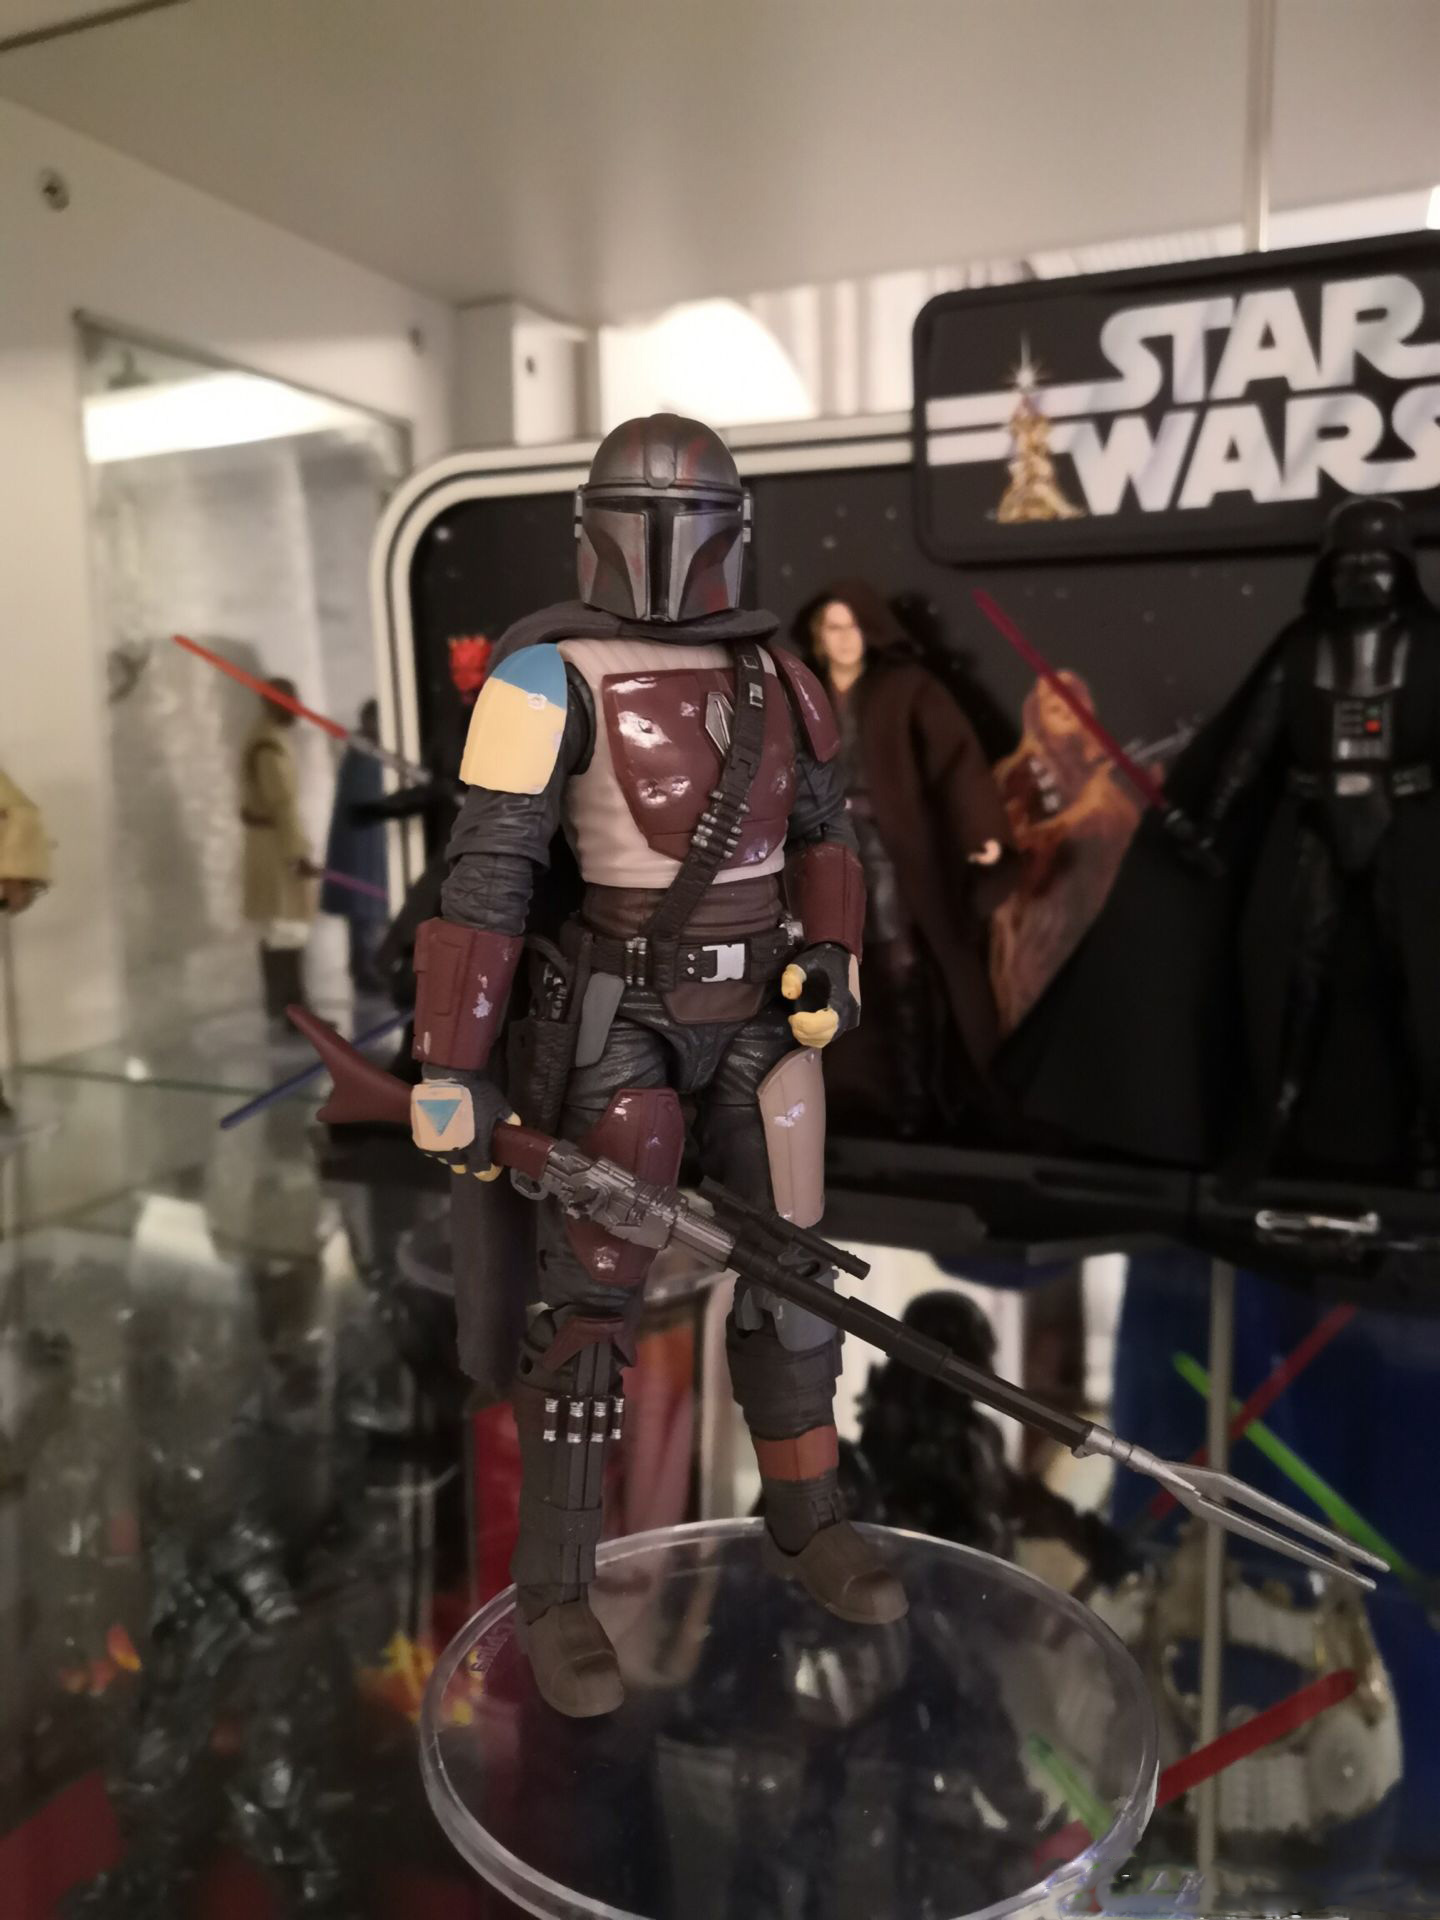 Hasbro Star Wars The Mandalorian Anime Action & Toy Figures Model Toys For Children With Box